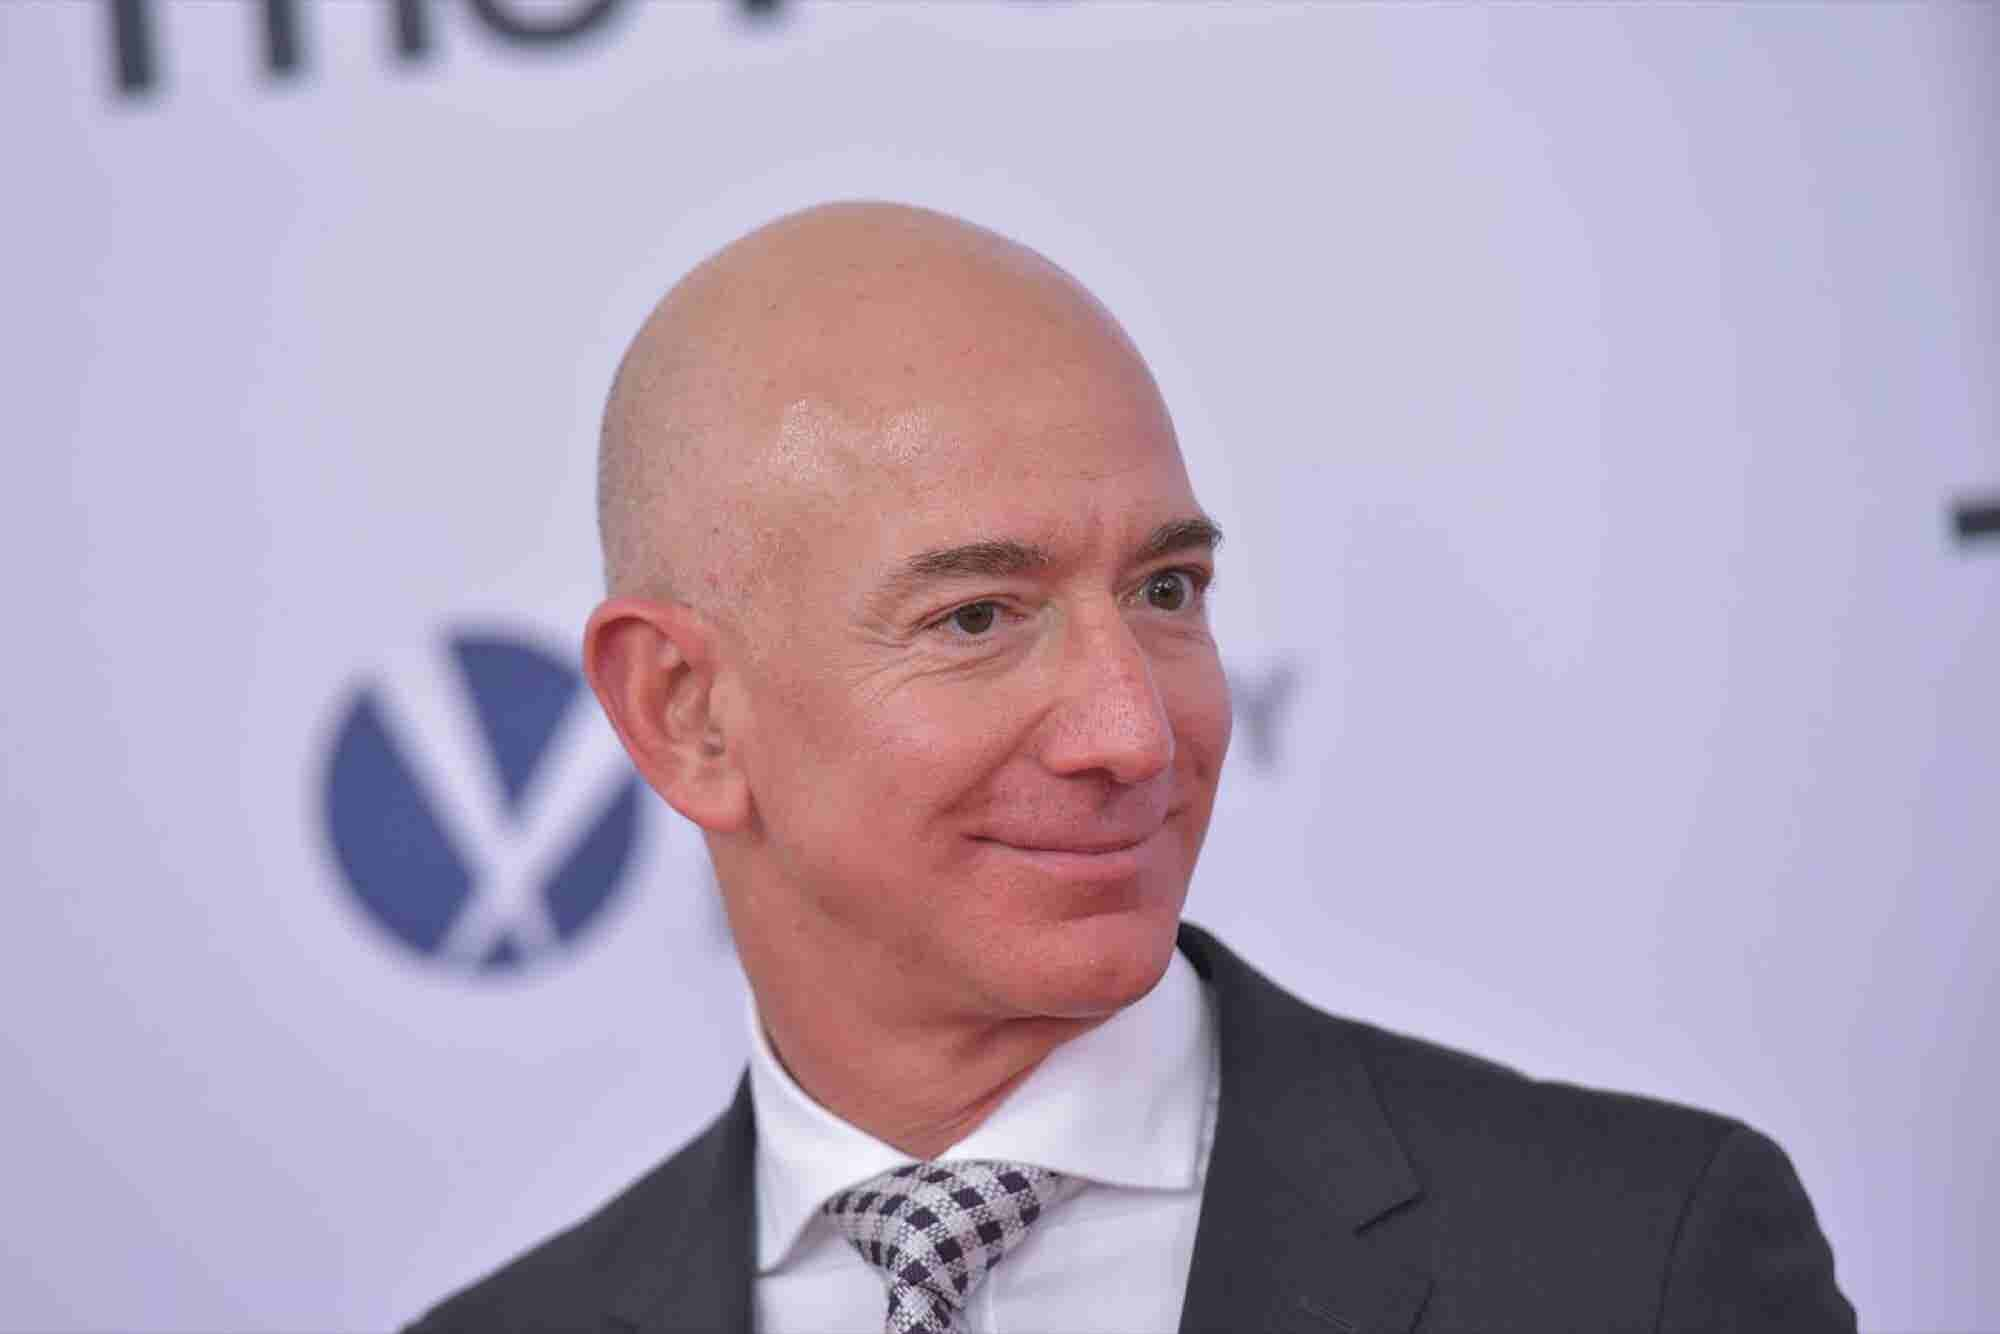 Jeff Bezos Reveals 3 Strategies for Amazon's Success